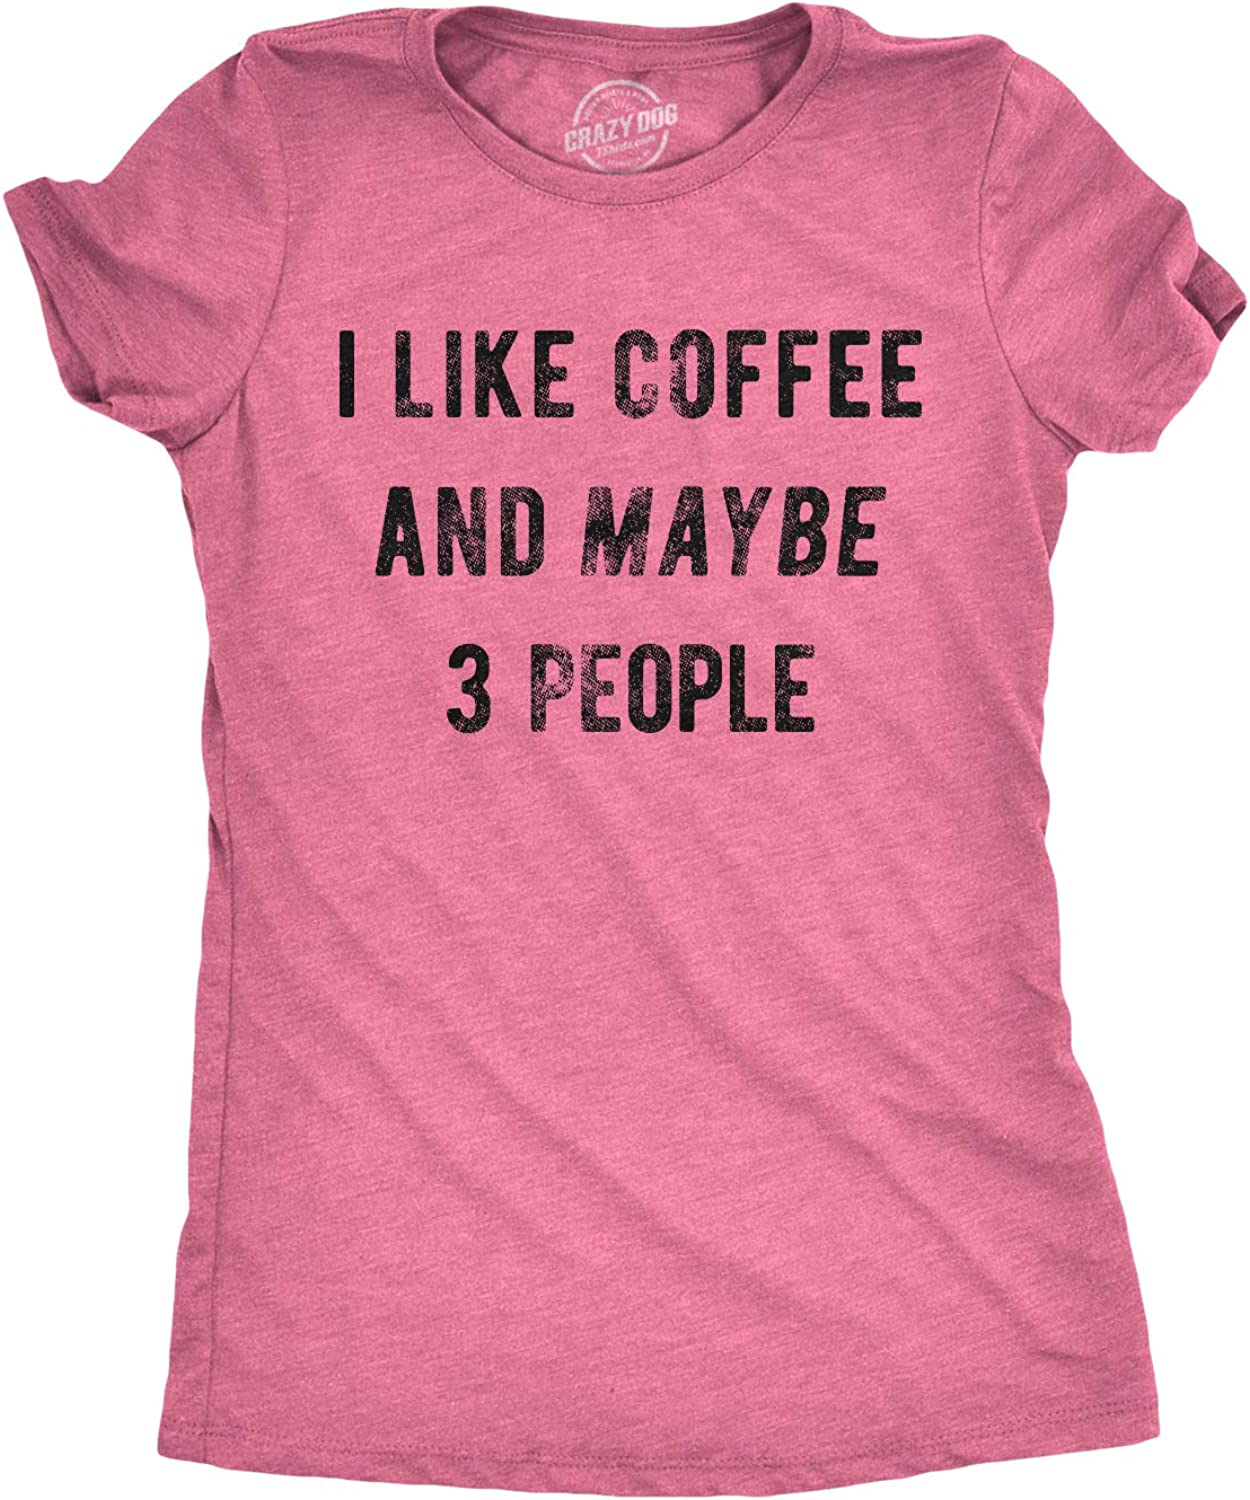 Crazy Dog T-Shirts Womens I Like Coffee and Maybe 3 People T Shirt Funny Sarcastic Tee for Ladies